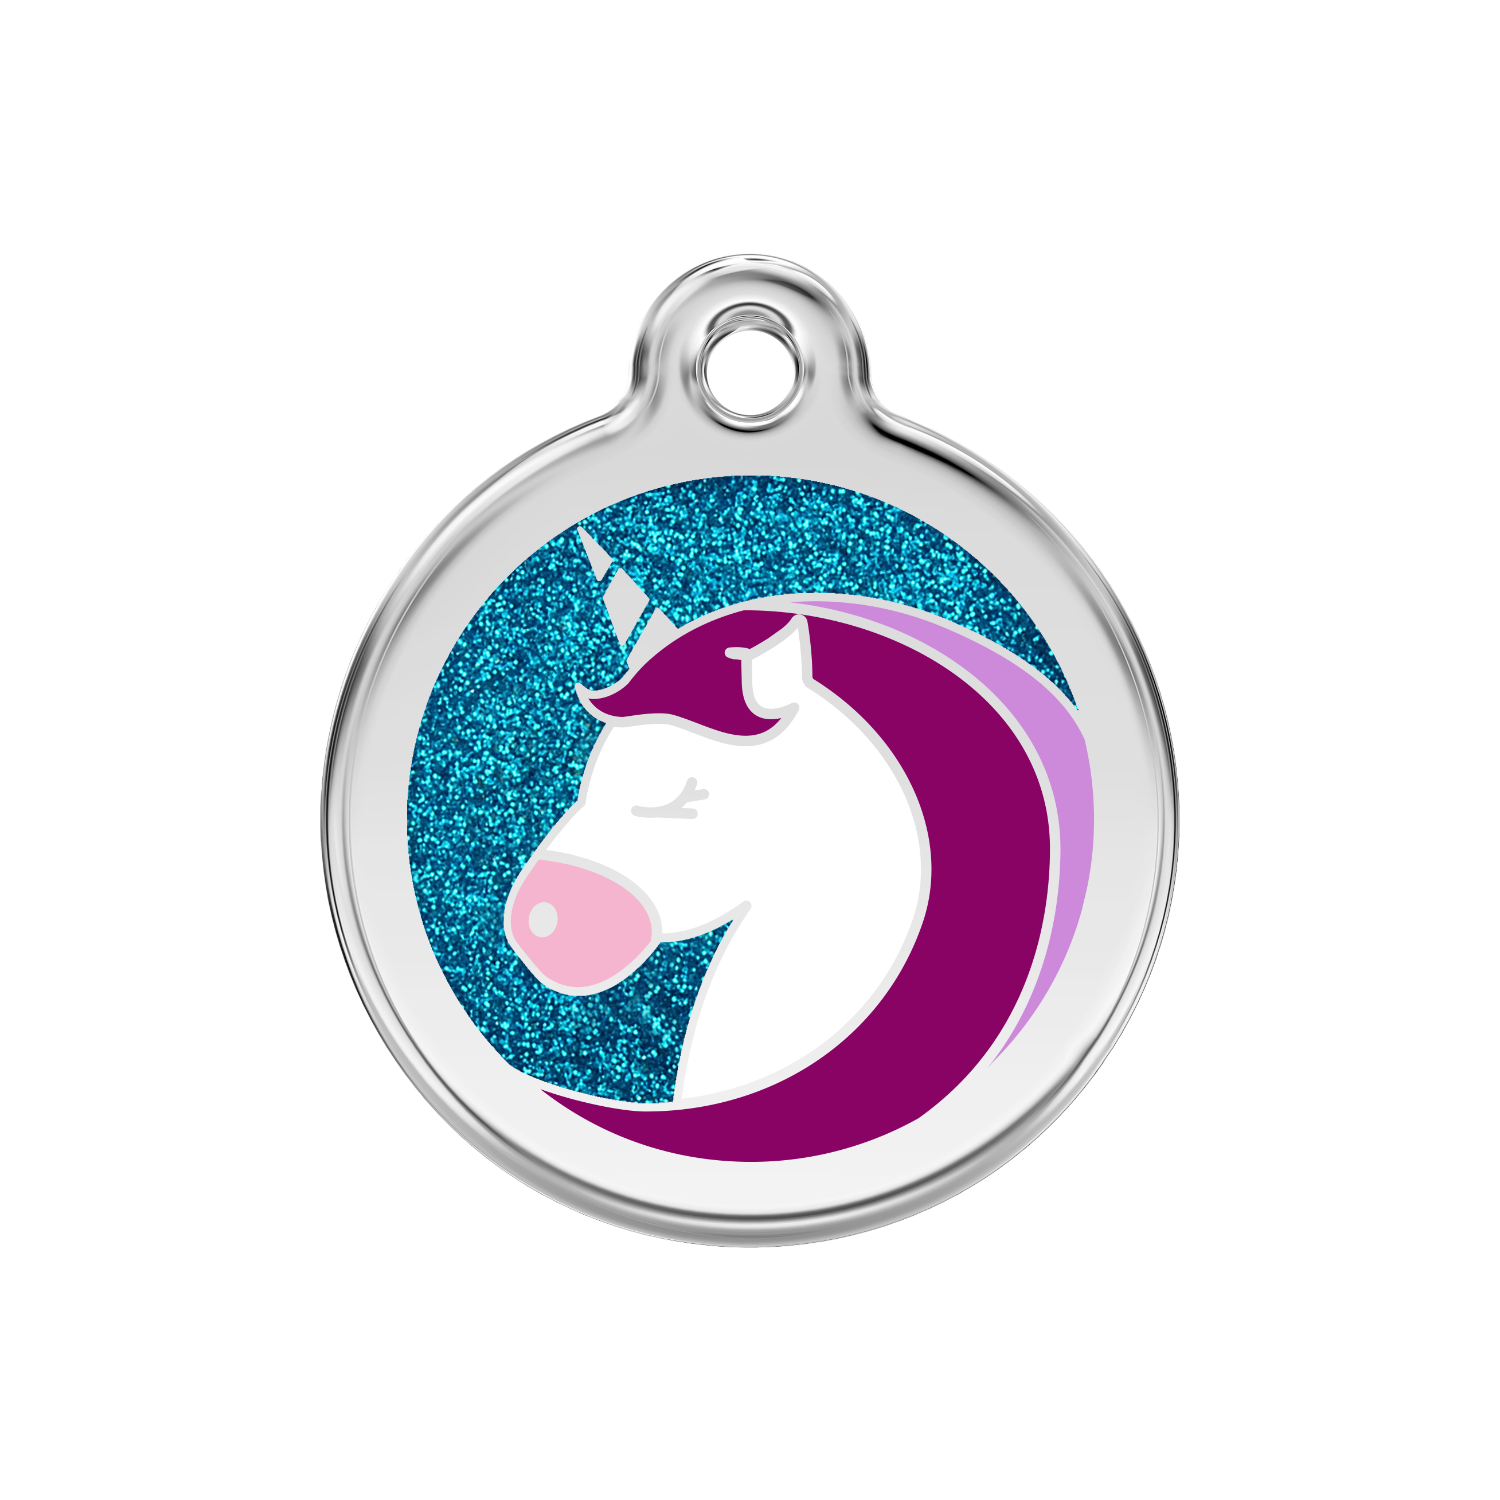 Unicorn Medium Glitter Enamel & Stainless Steel Tag>